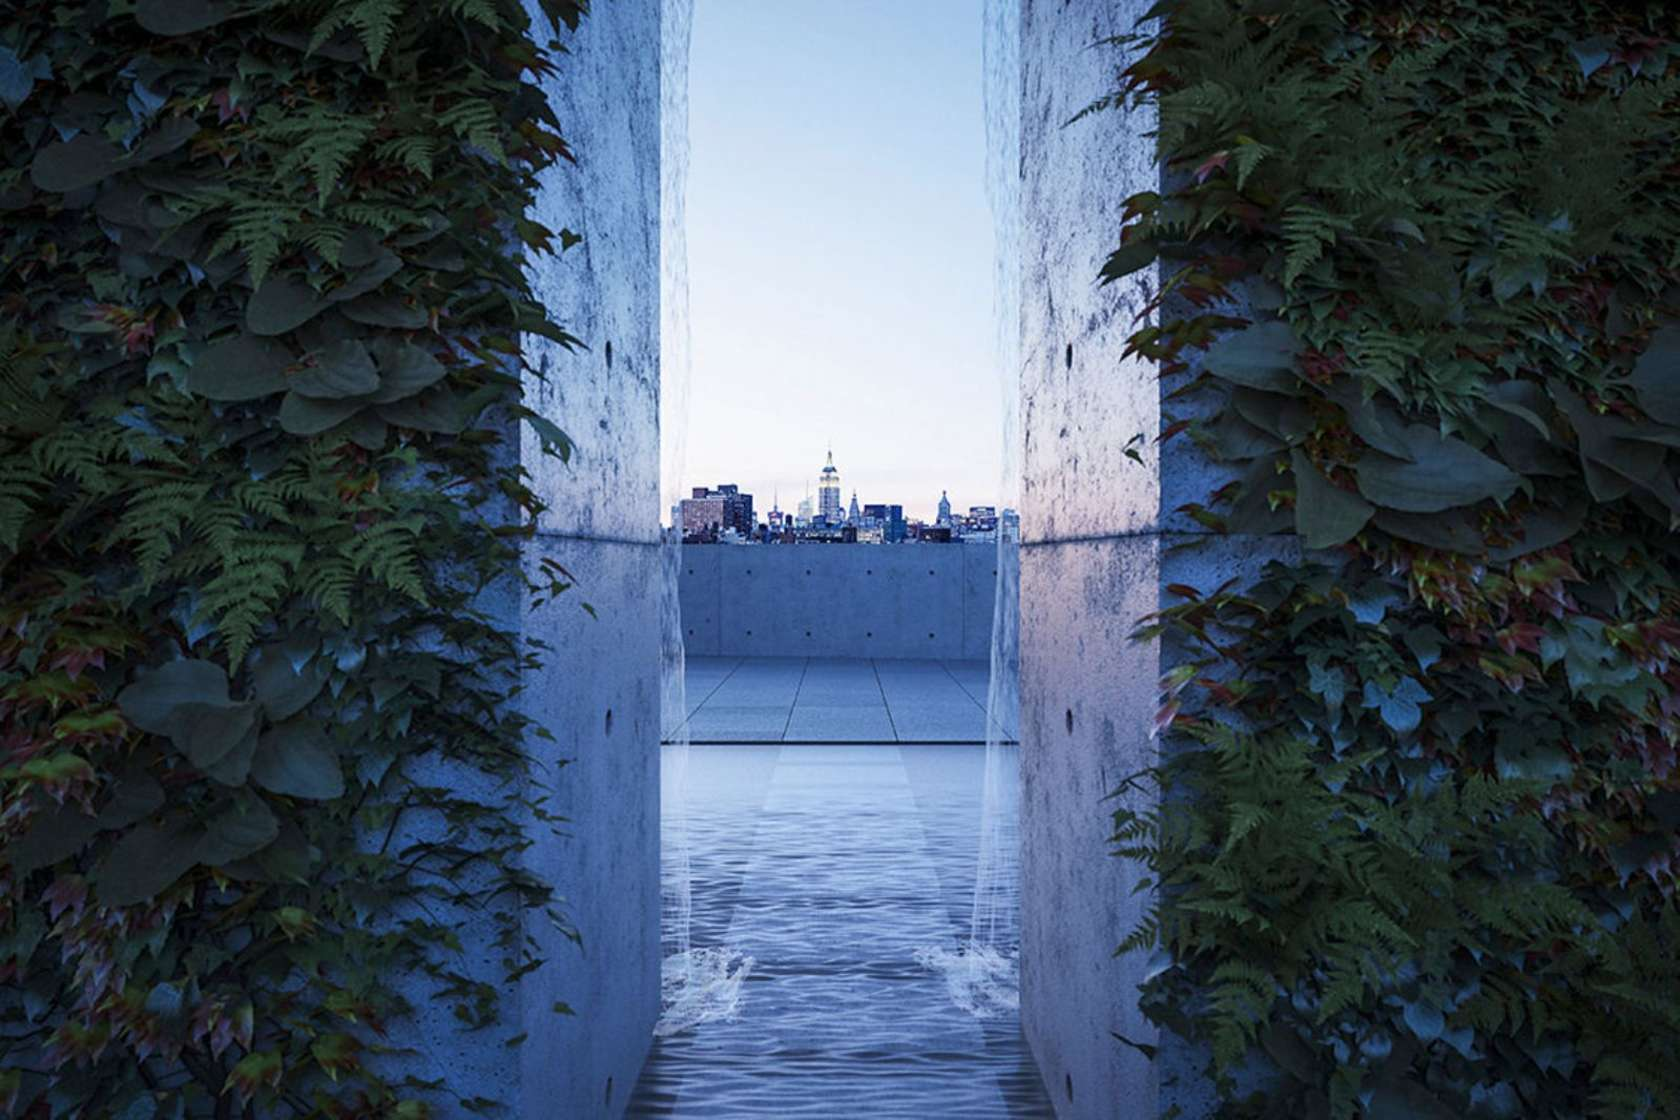 Quiet Architecture: Watch as Tadao Ando Sketches Out a Concrete Icon for New York City